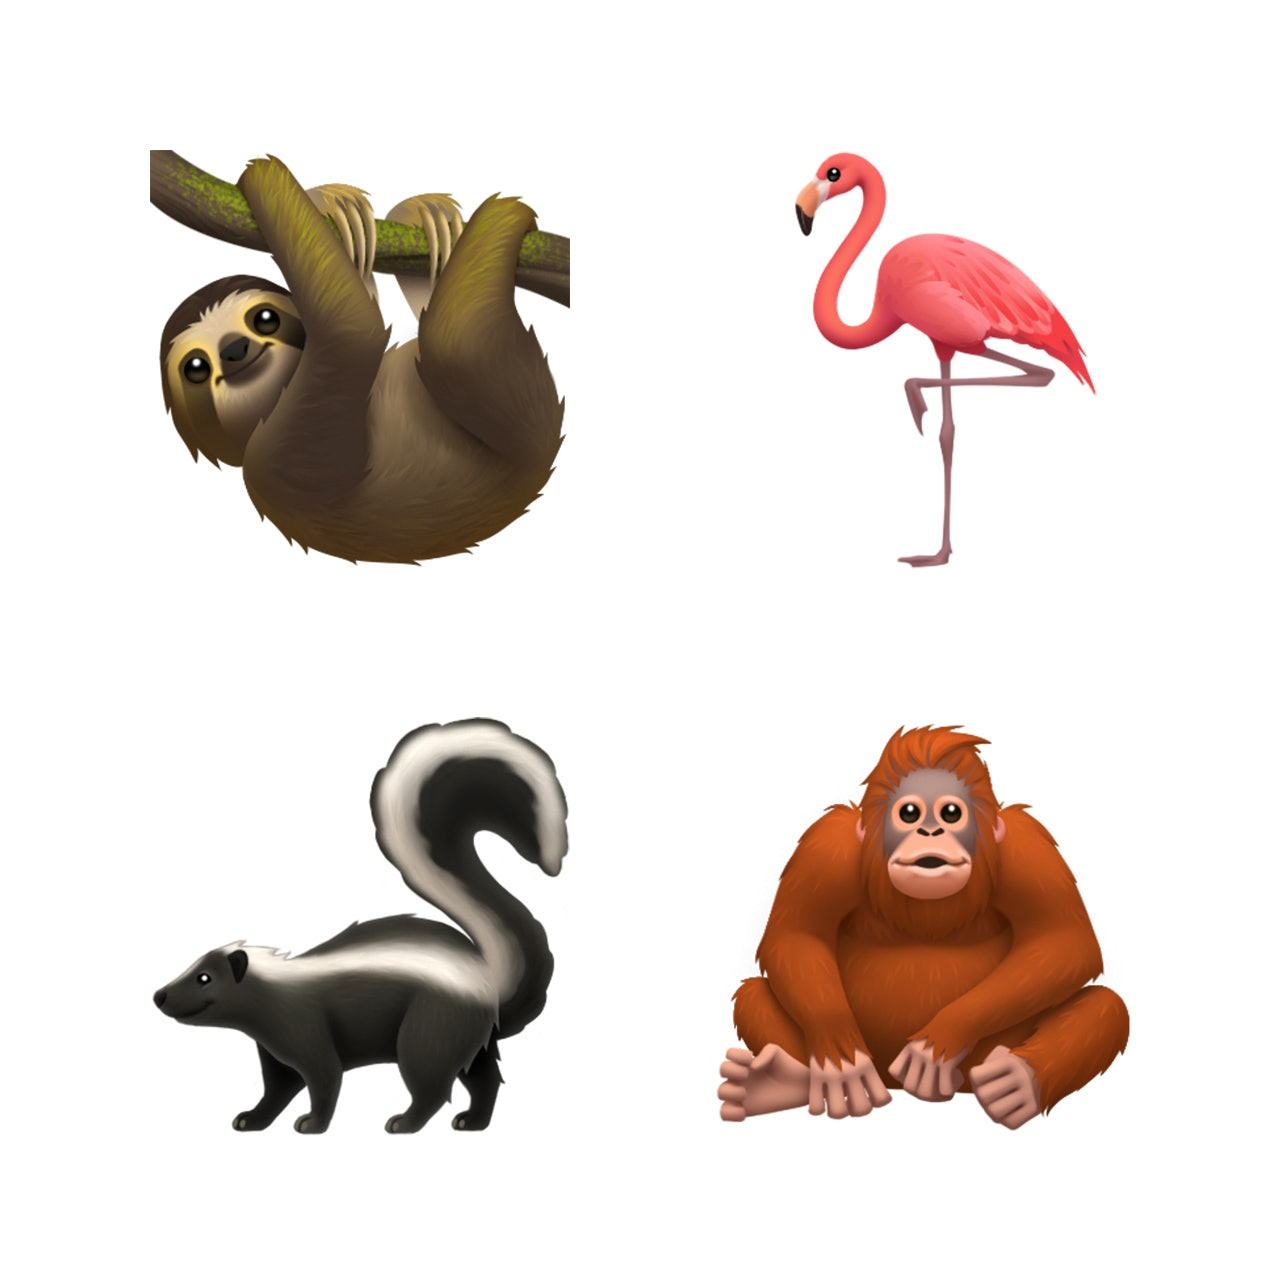 New emojis to be released by Apple and Google for 2019